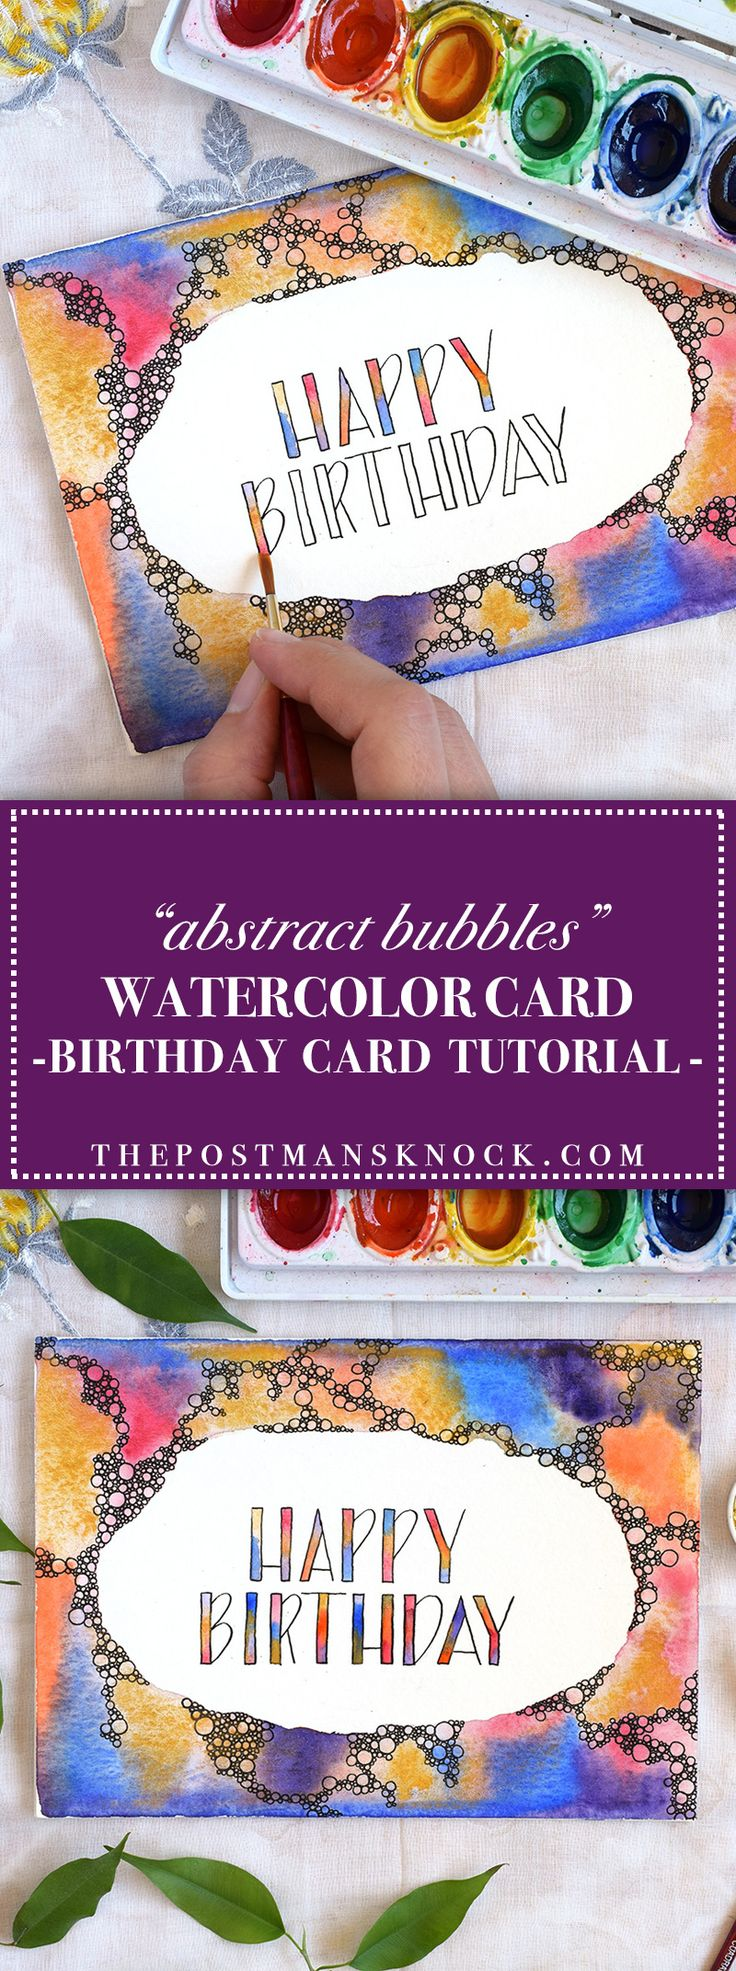 Abstract Bubbles Watercolor Birthday Card Tutorial